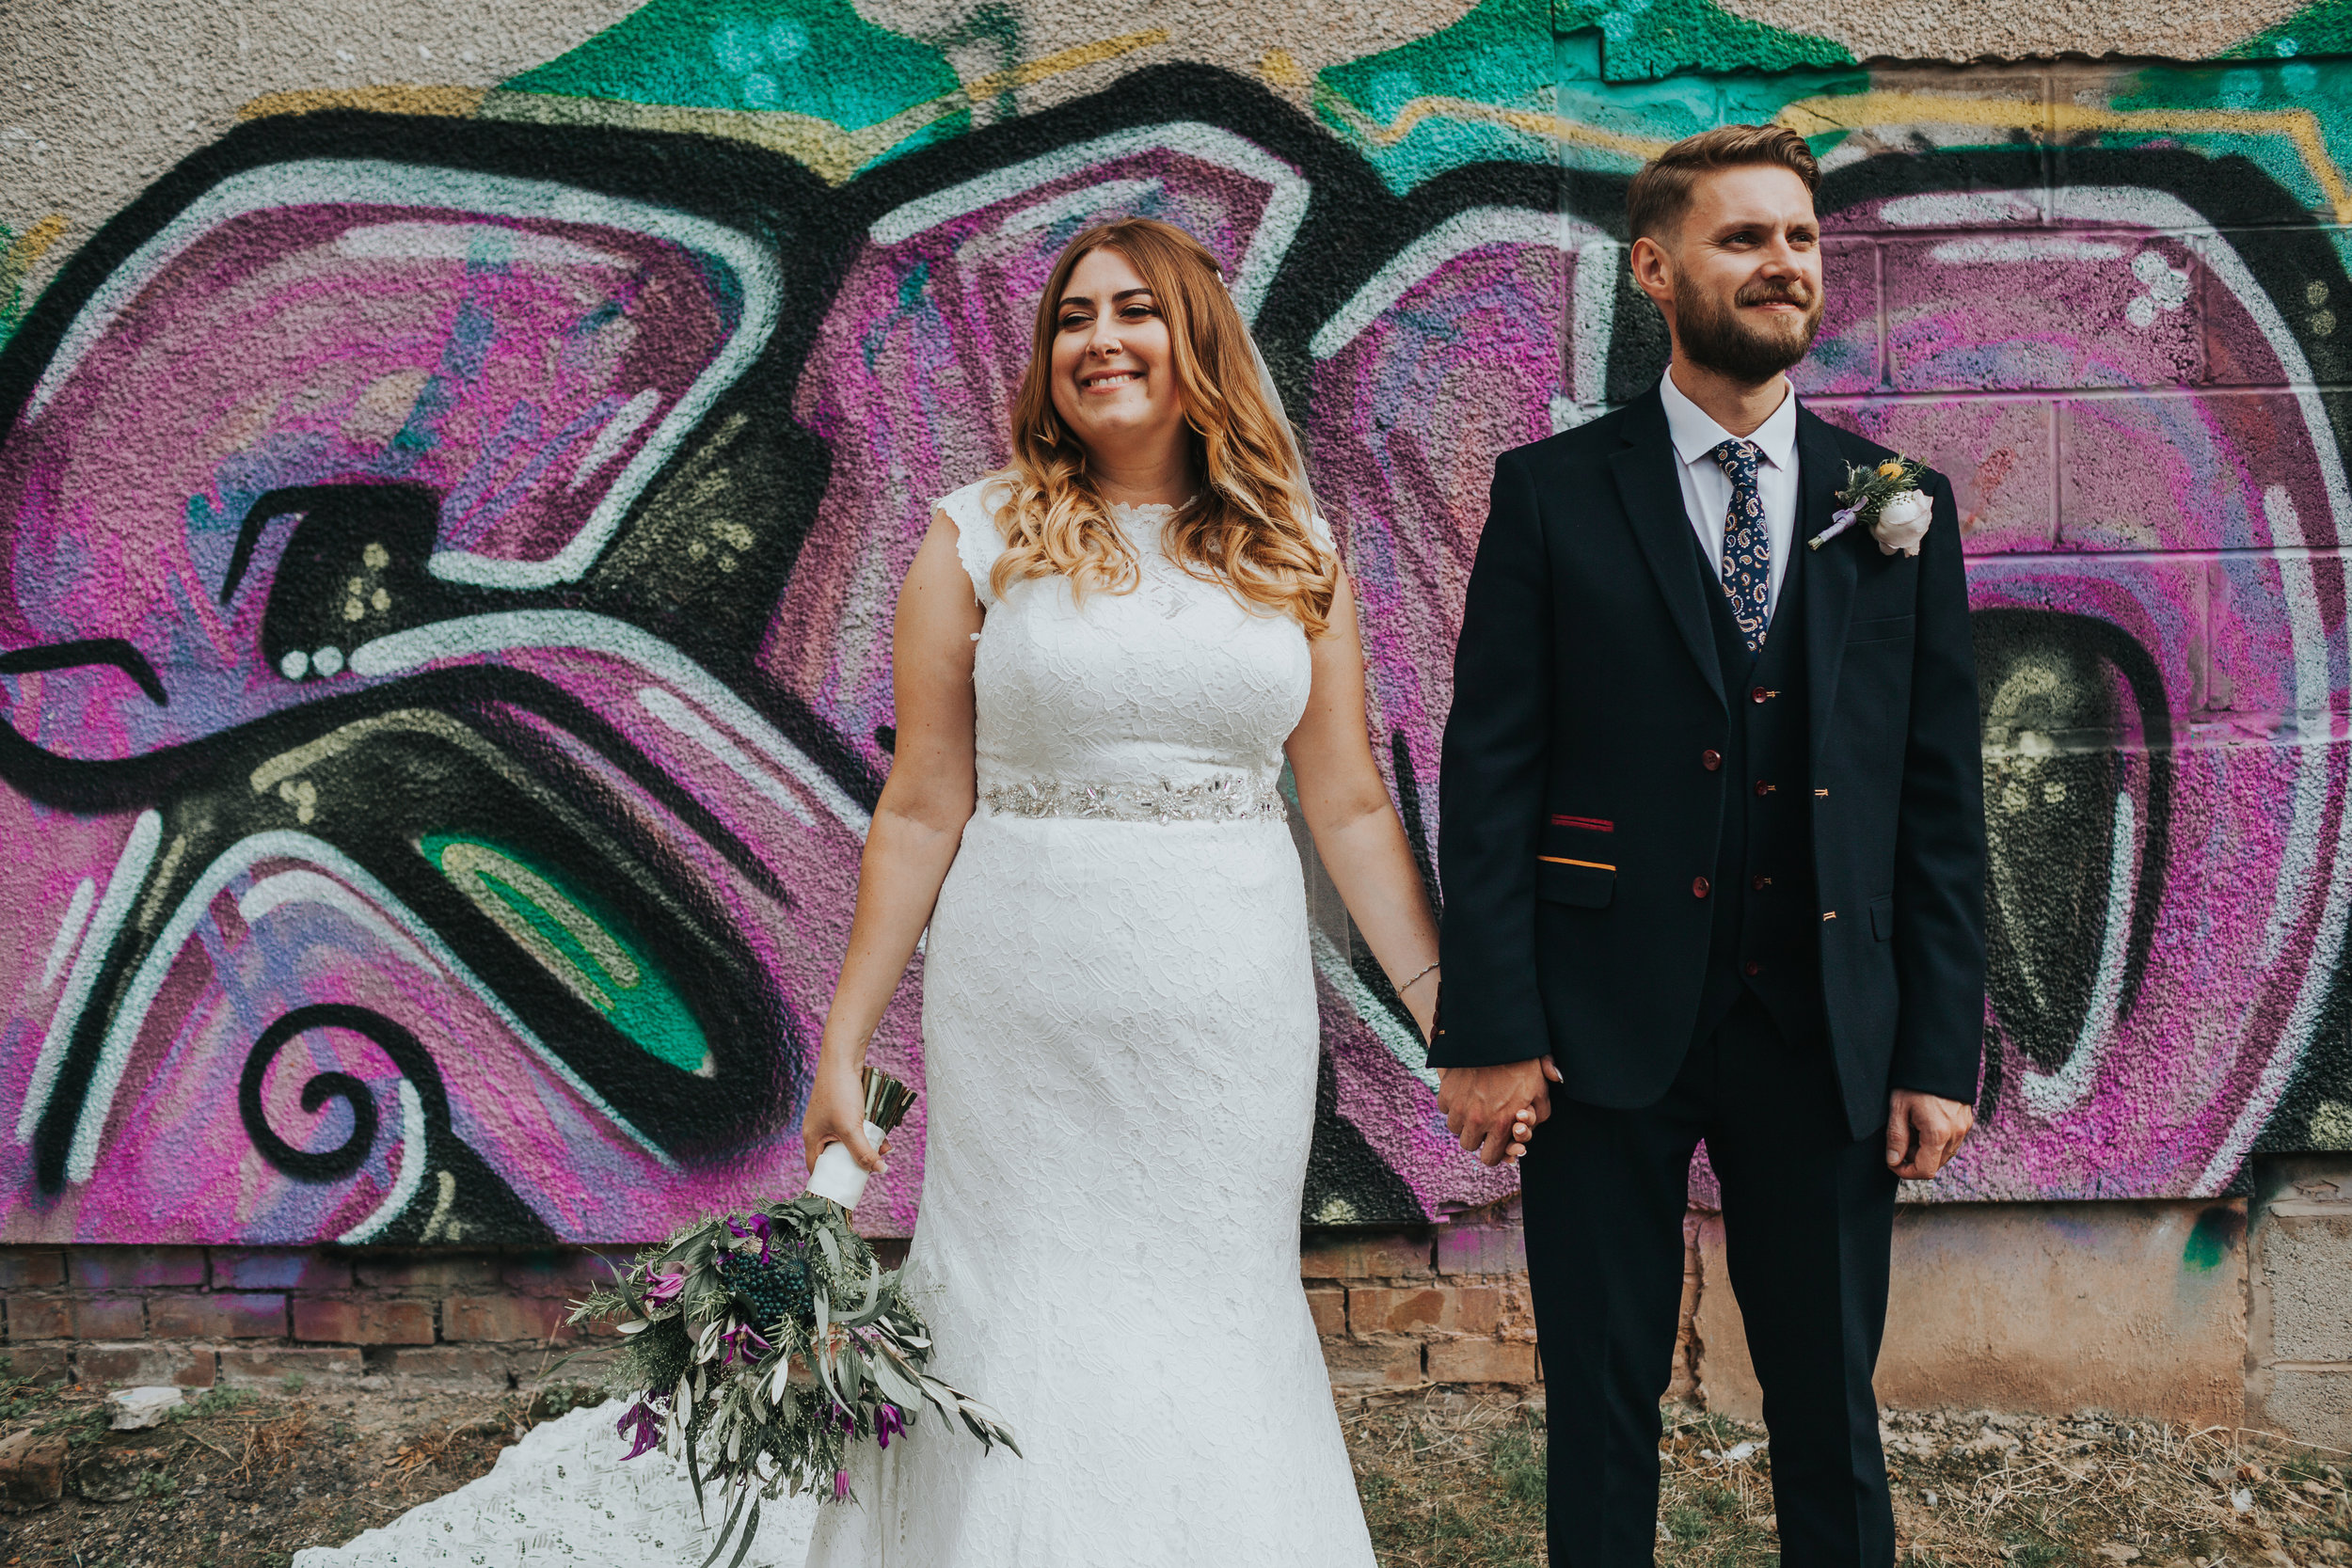 Bride and Groom stand in front of Graffiti.